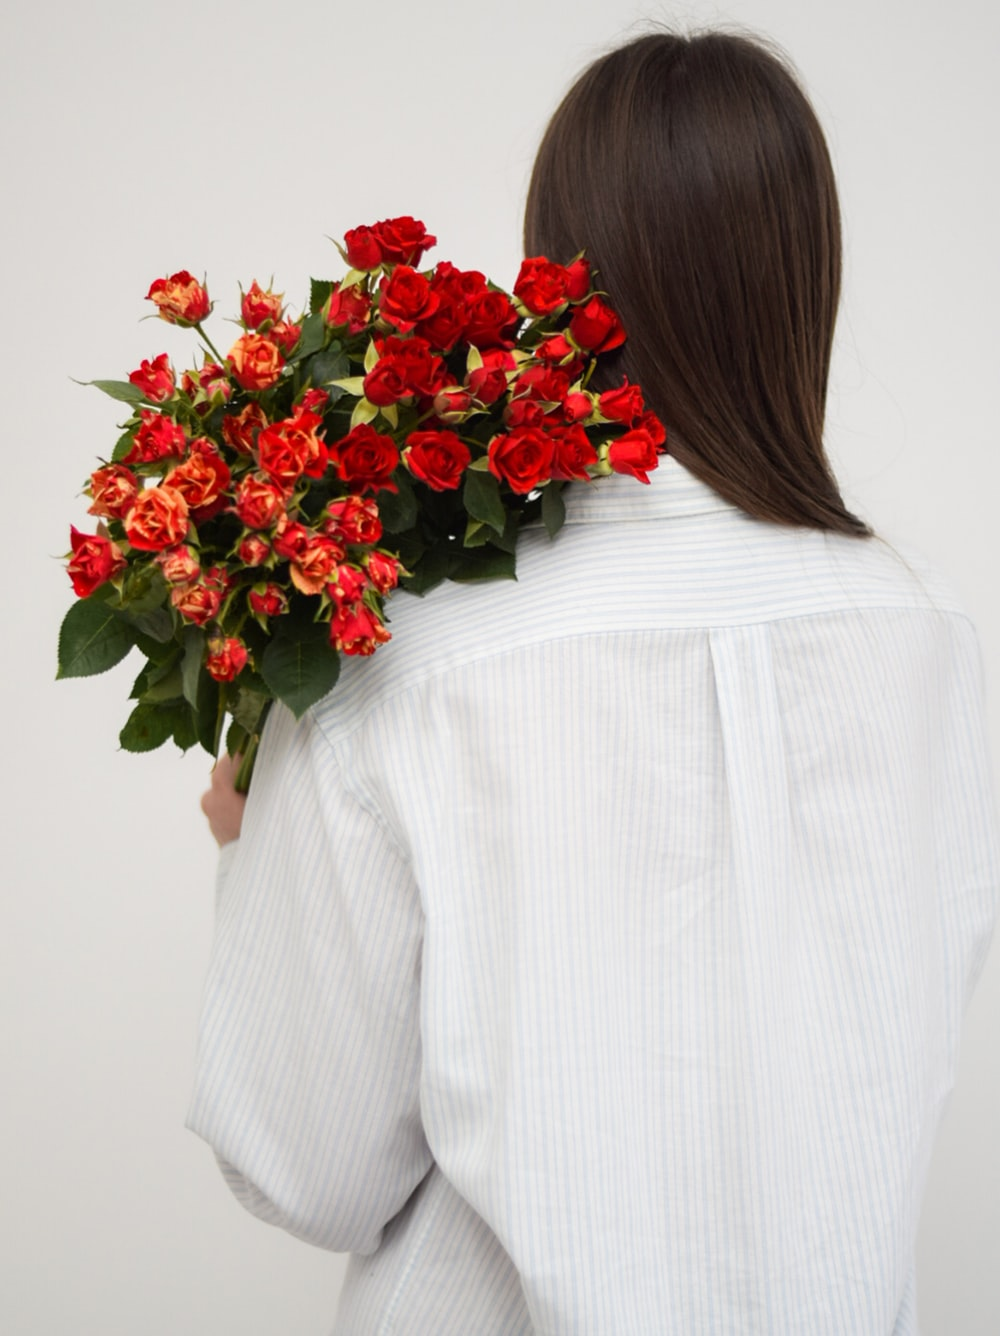 woman in white long sleeve shirt holding red rose bouquet